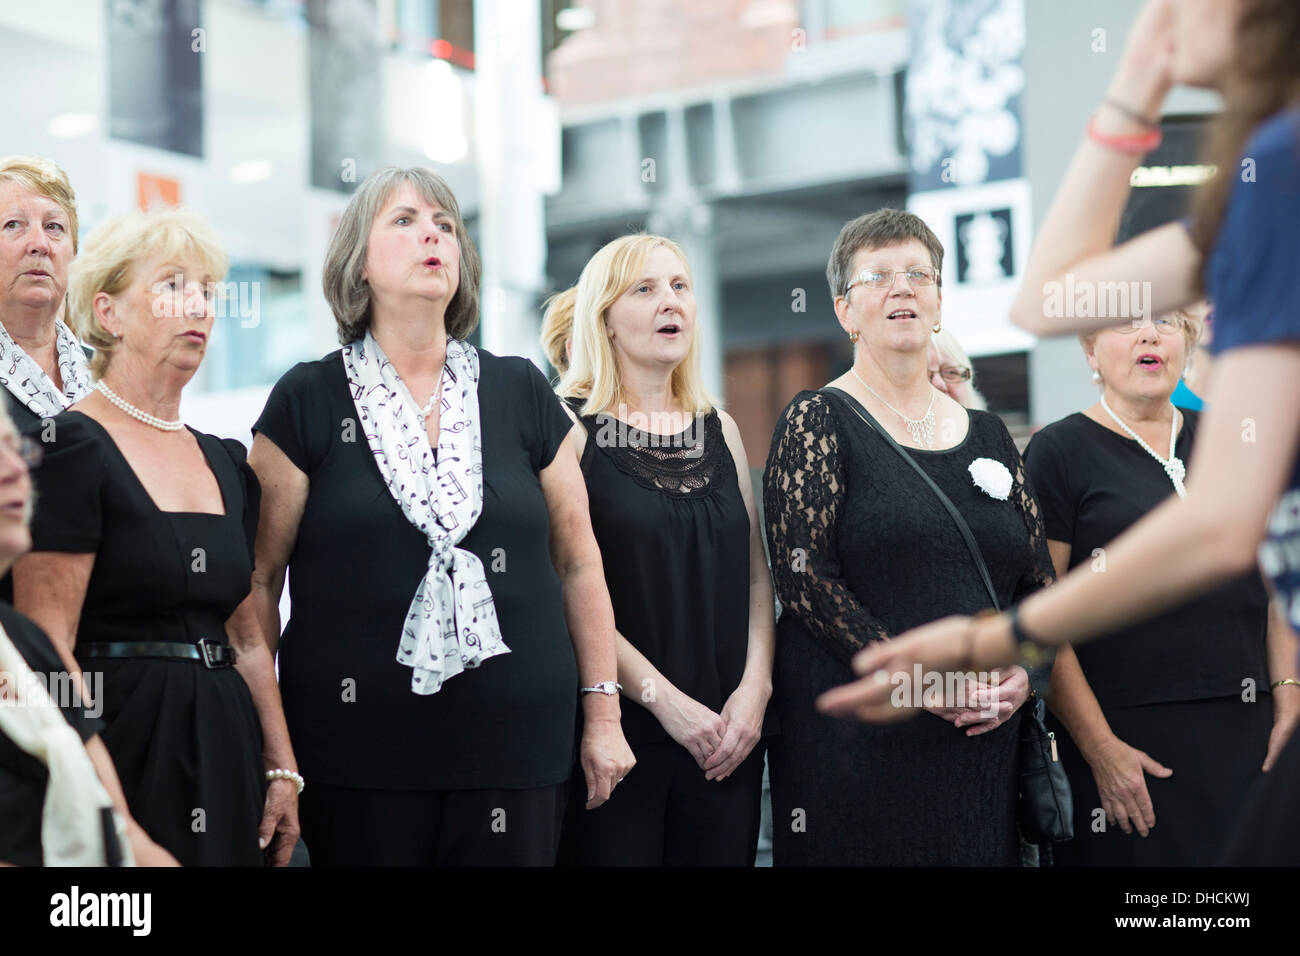 Members of a mixed Choir singing at the National Waterfront Museum in Swansea. - Stock Image